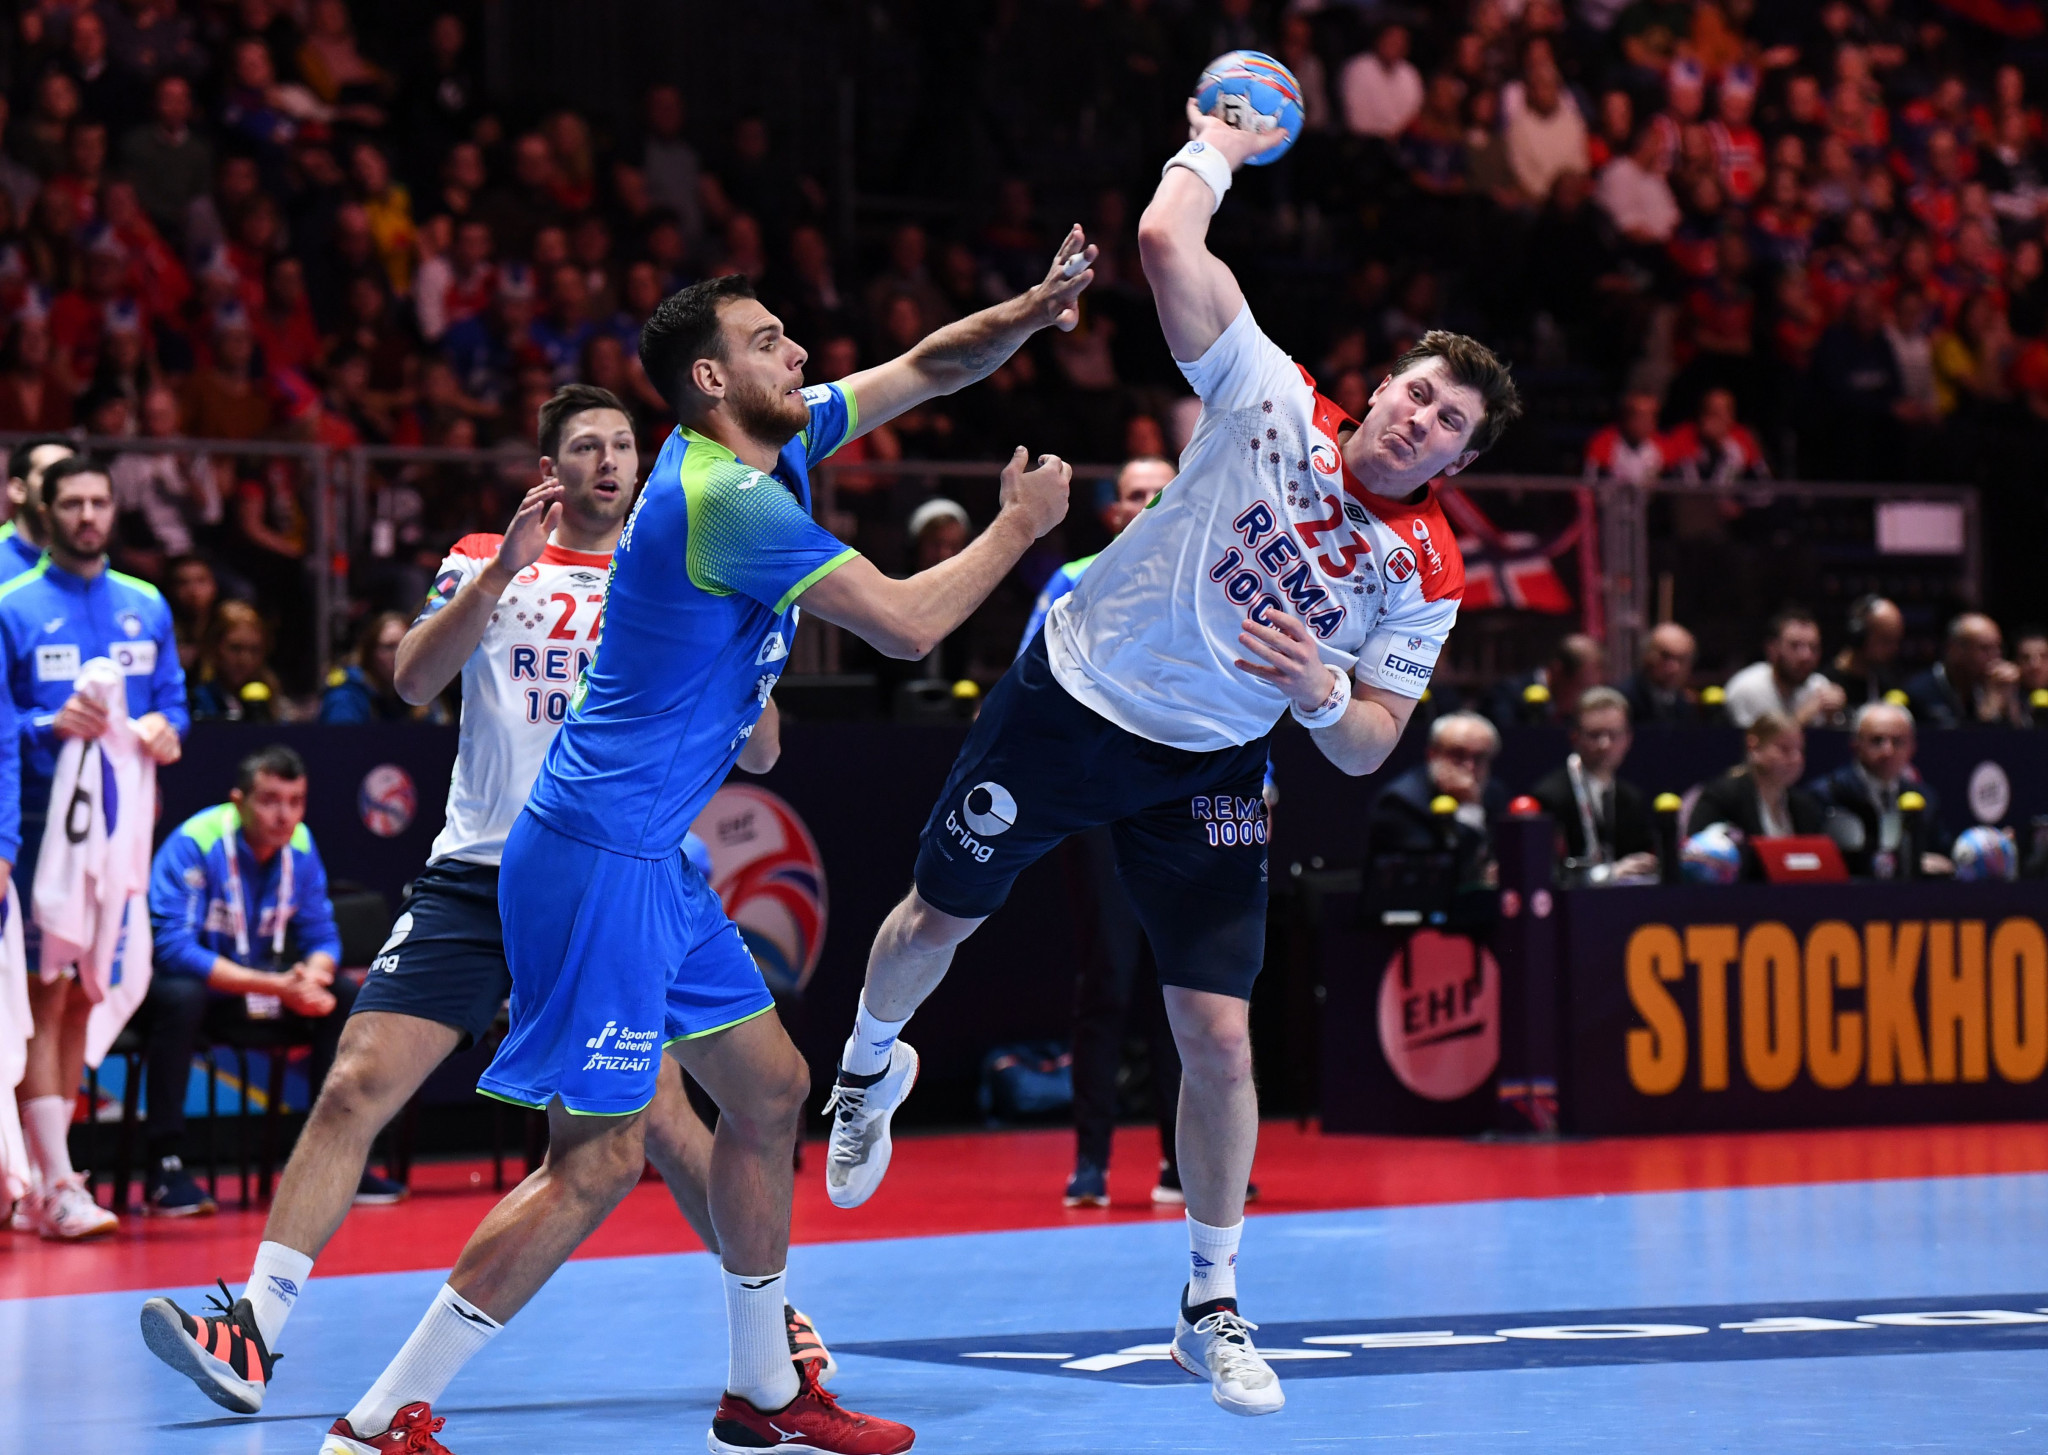 EHF hold draw for 2022 European Men's Handball Championship qualifiers